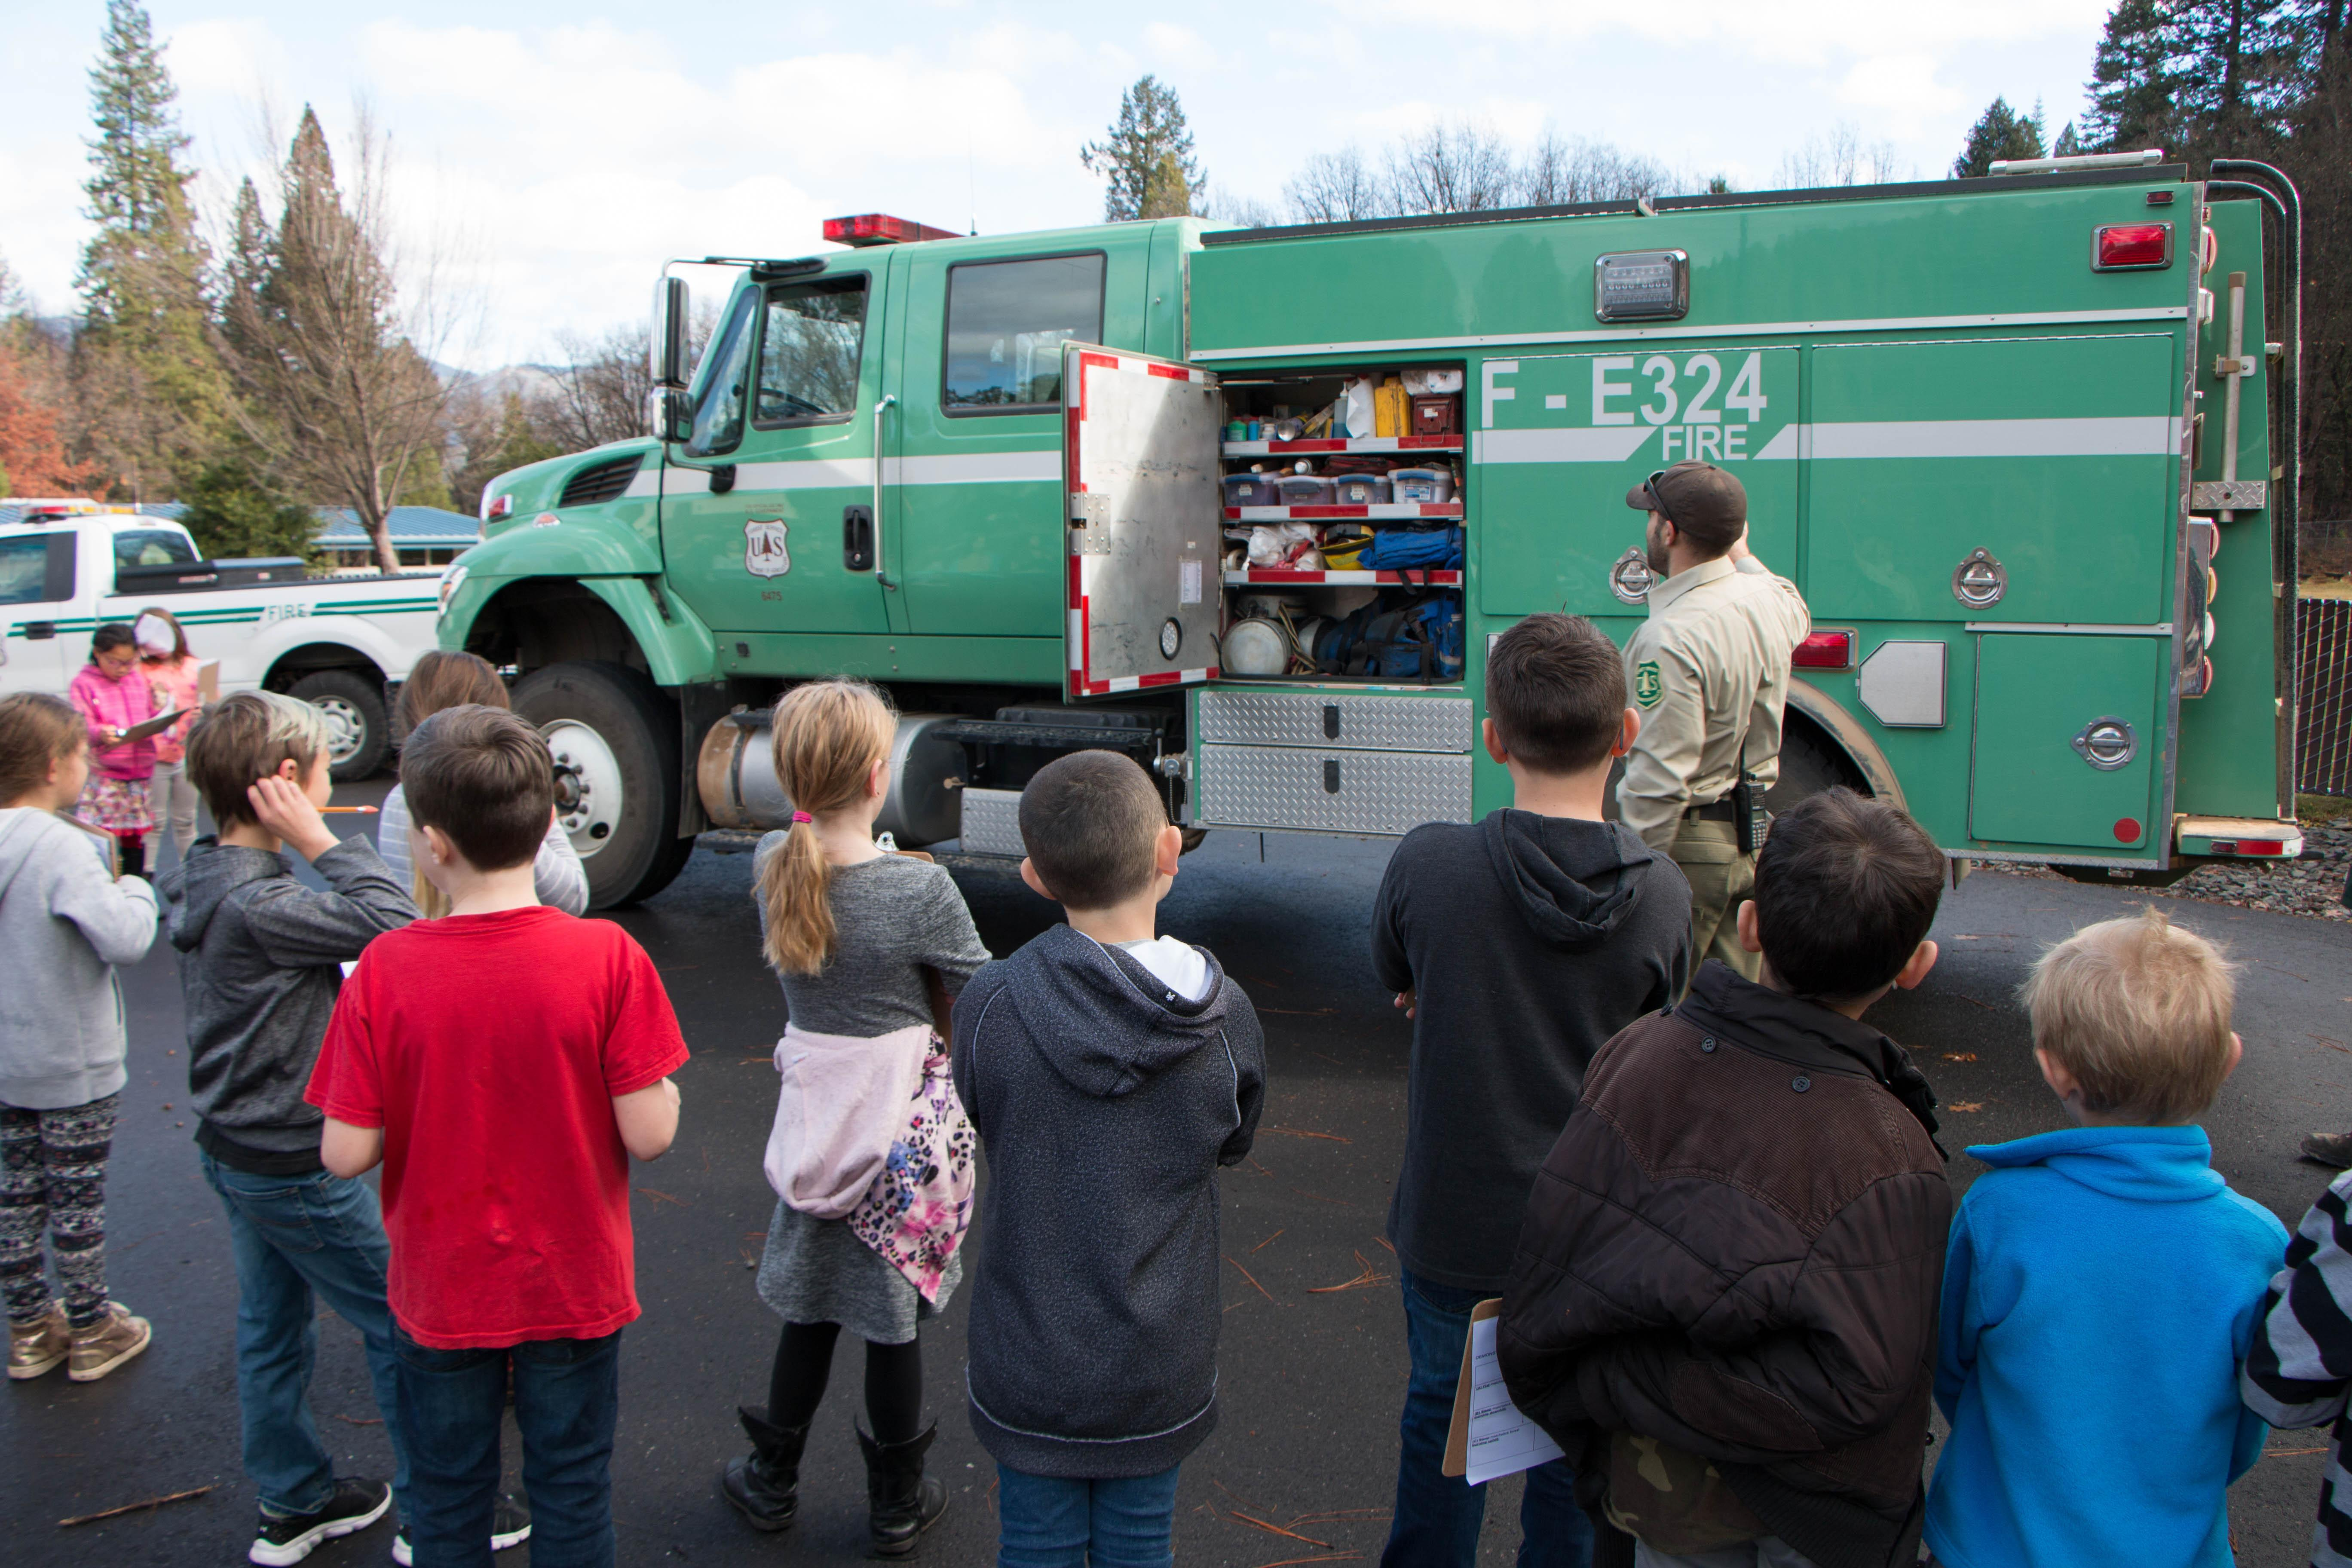 3rd graders at Quincy Elementary learning fire science